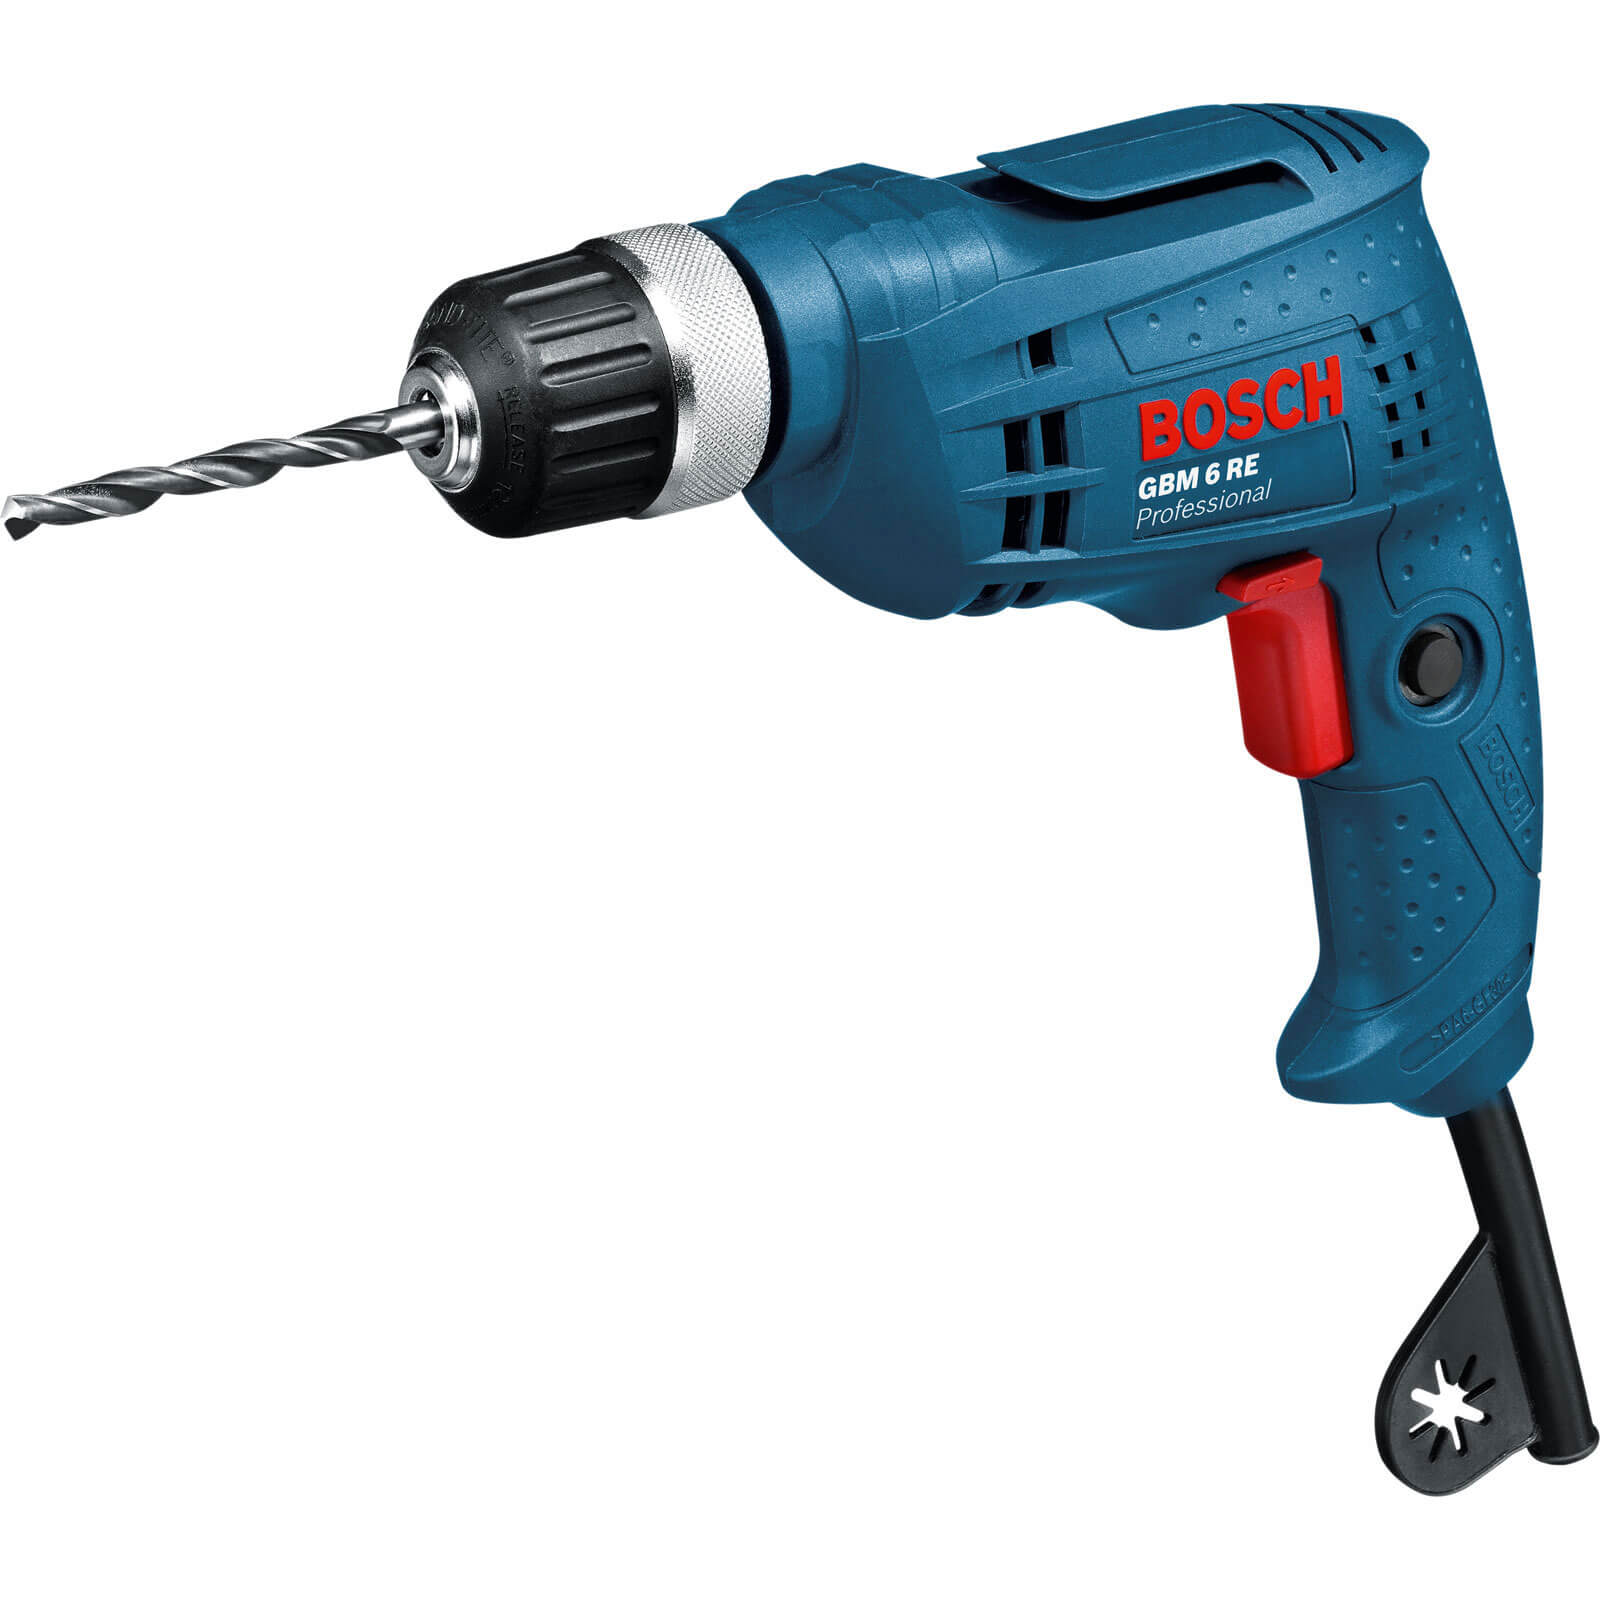 Bosch GBM 6 RE Electric Rotary Drill with Keyed Chuck 350w 240v